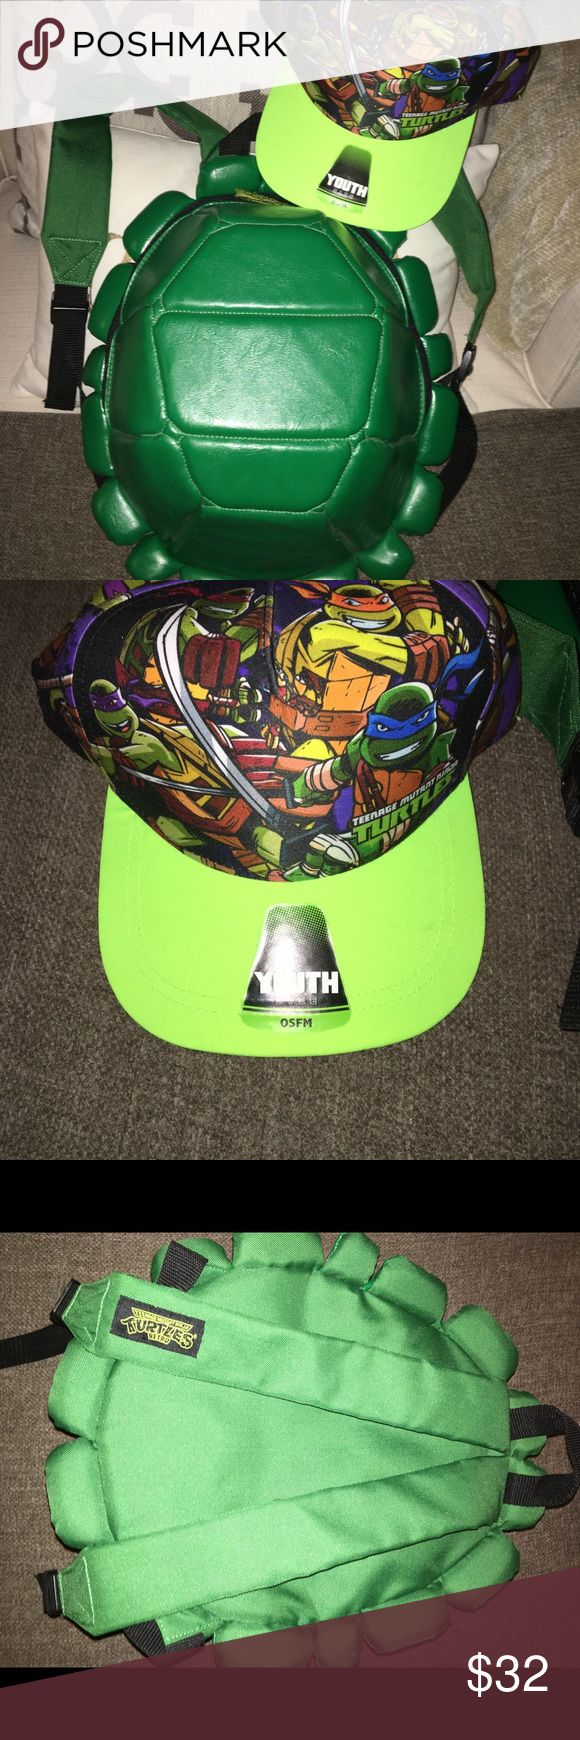 TMNT - Teenage Mutant Ninja Turtles bundle Youth size turtle shell backpack & SnapBack hat (One size FM) See pics for current selling price Nickelodeon Accessories Bags